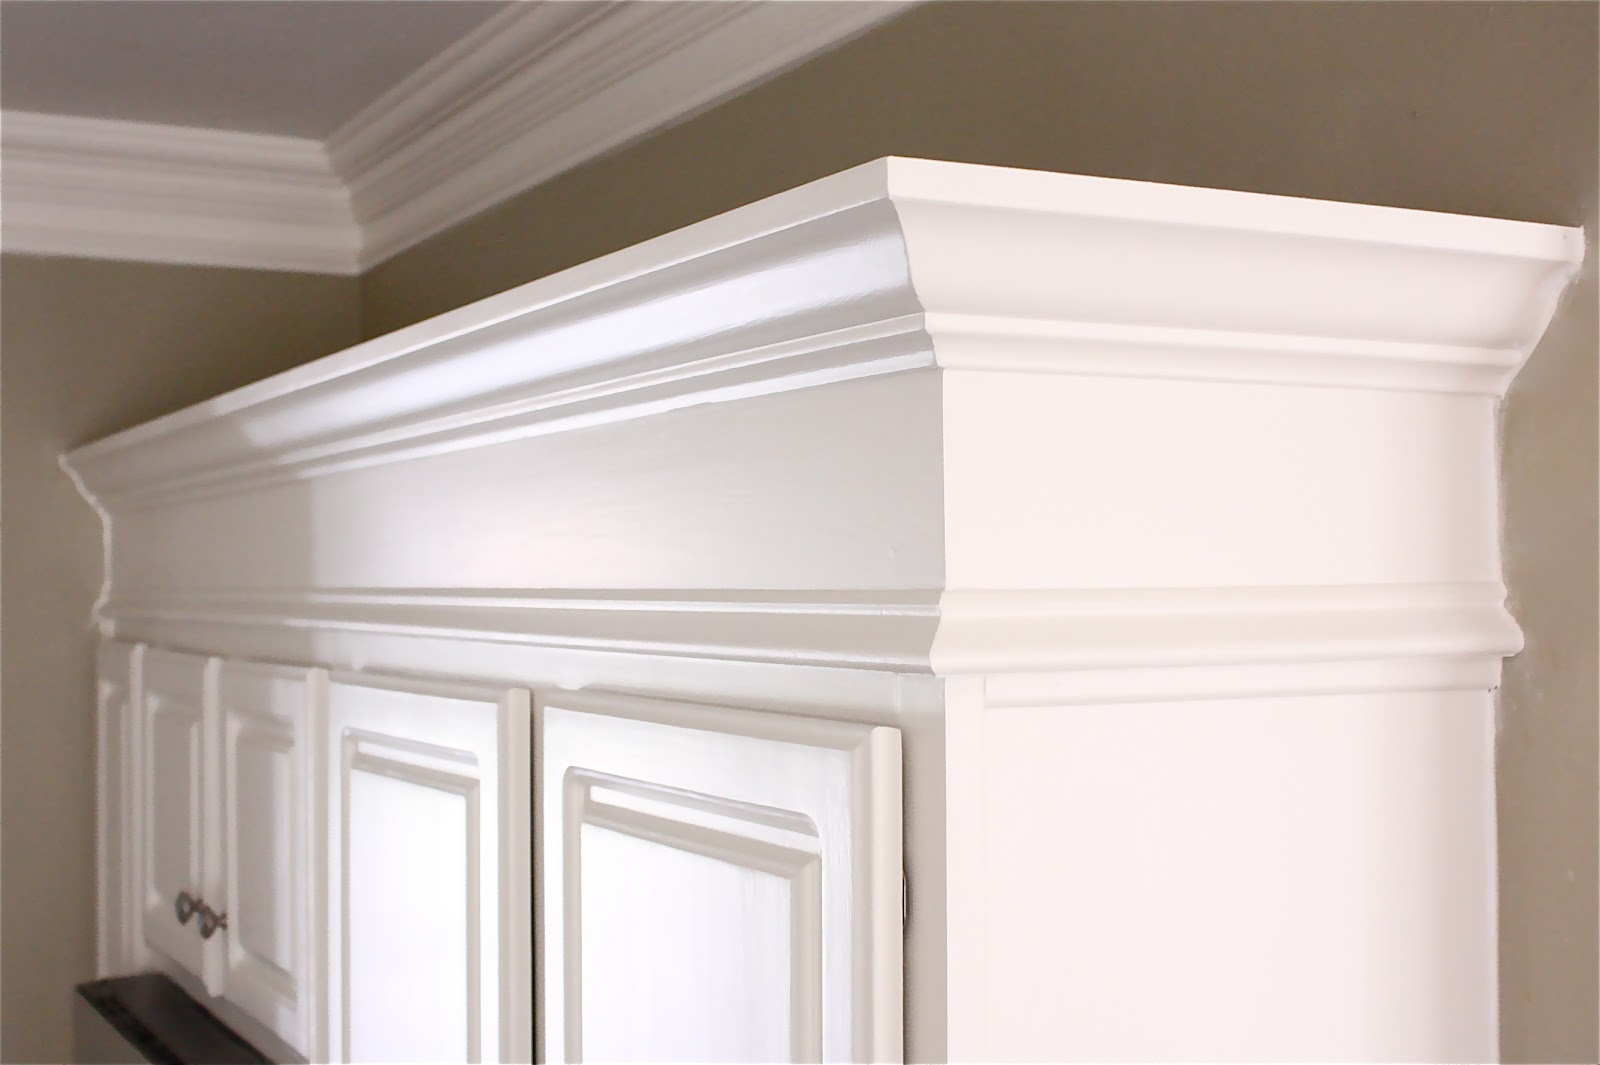 Installing Kitchen Cabinet Crown Molding The Yellow Cape Cod Making Cabinets Taller Builder